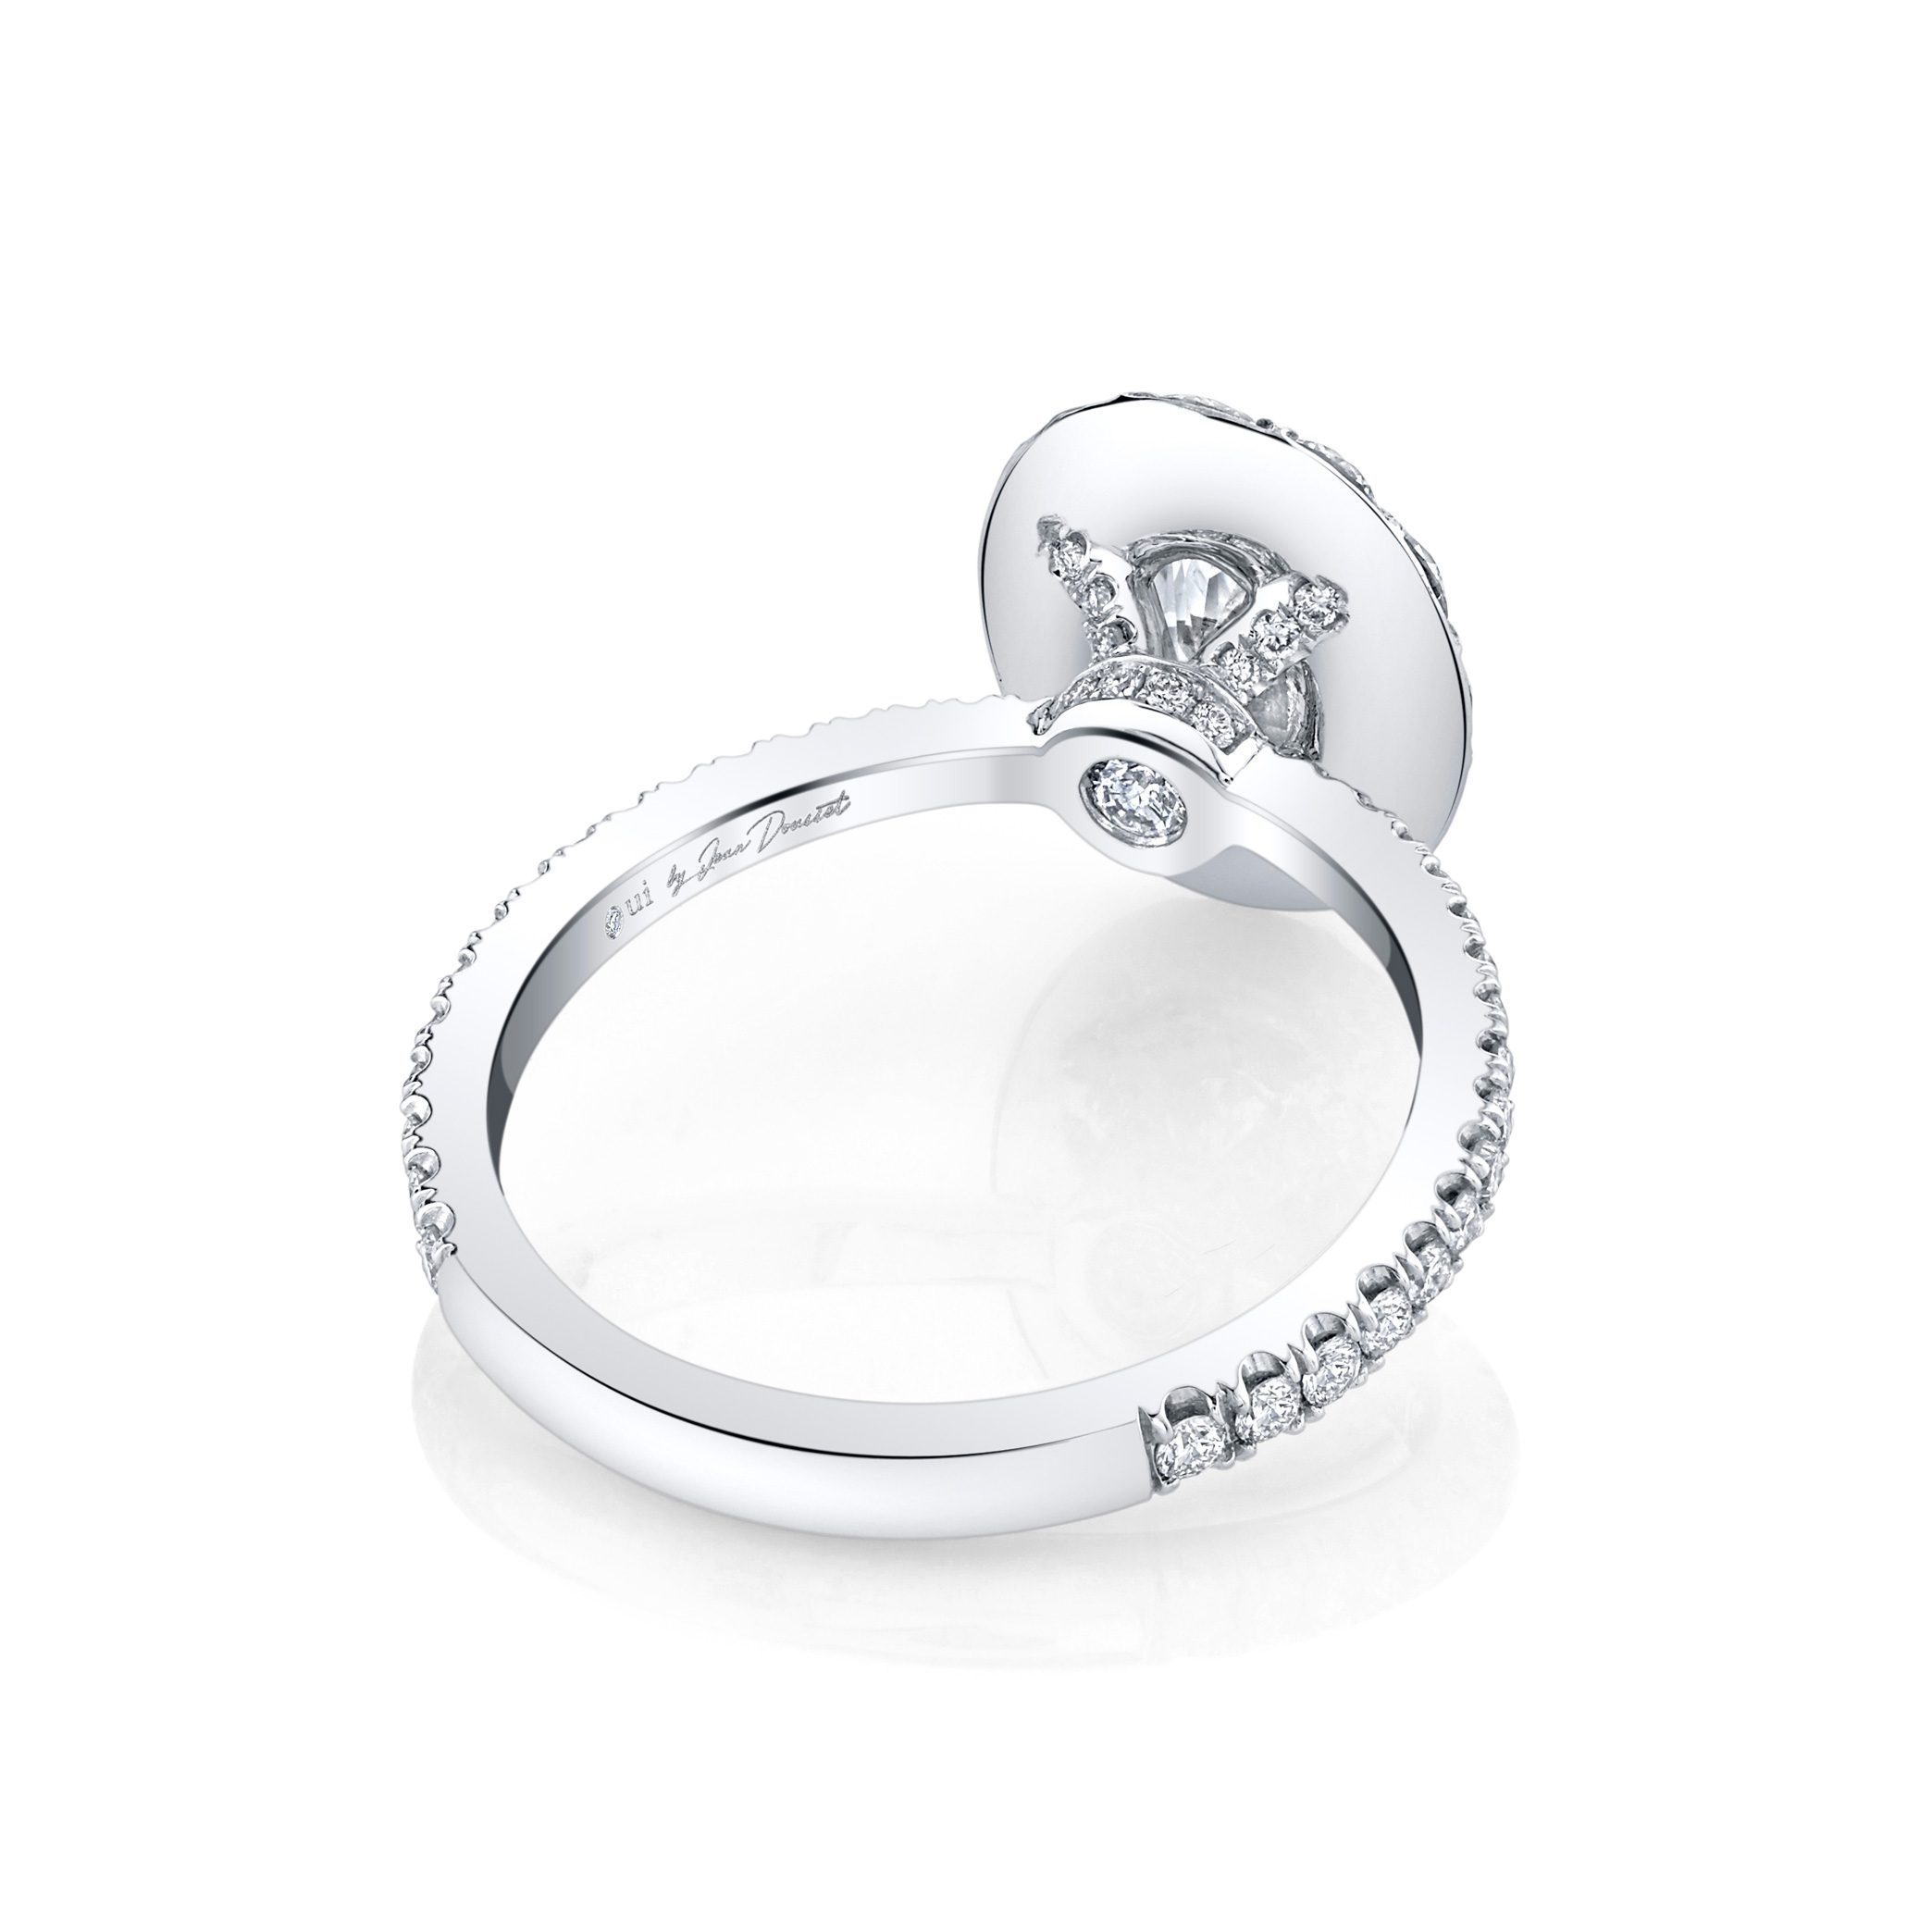 Eloise Floating Oval Seamless Solitaire® Engagement Ring with diamond pavé in 18k White Gold Back View by Oui by Jean Dousset